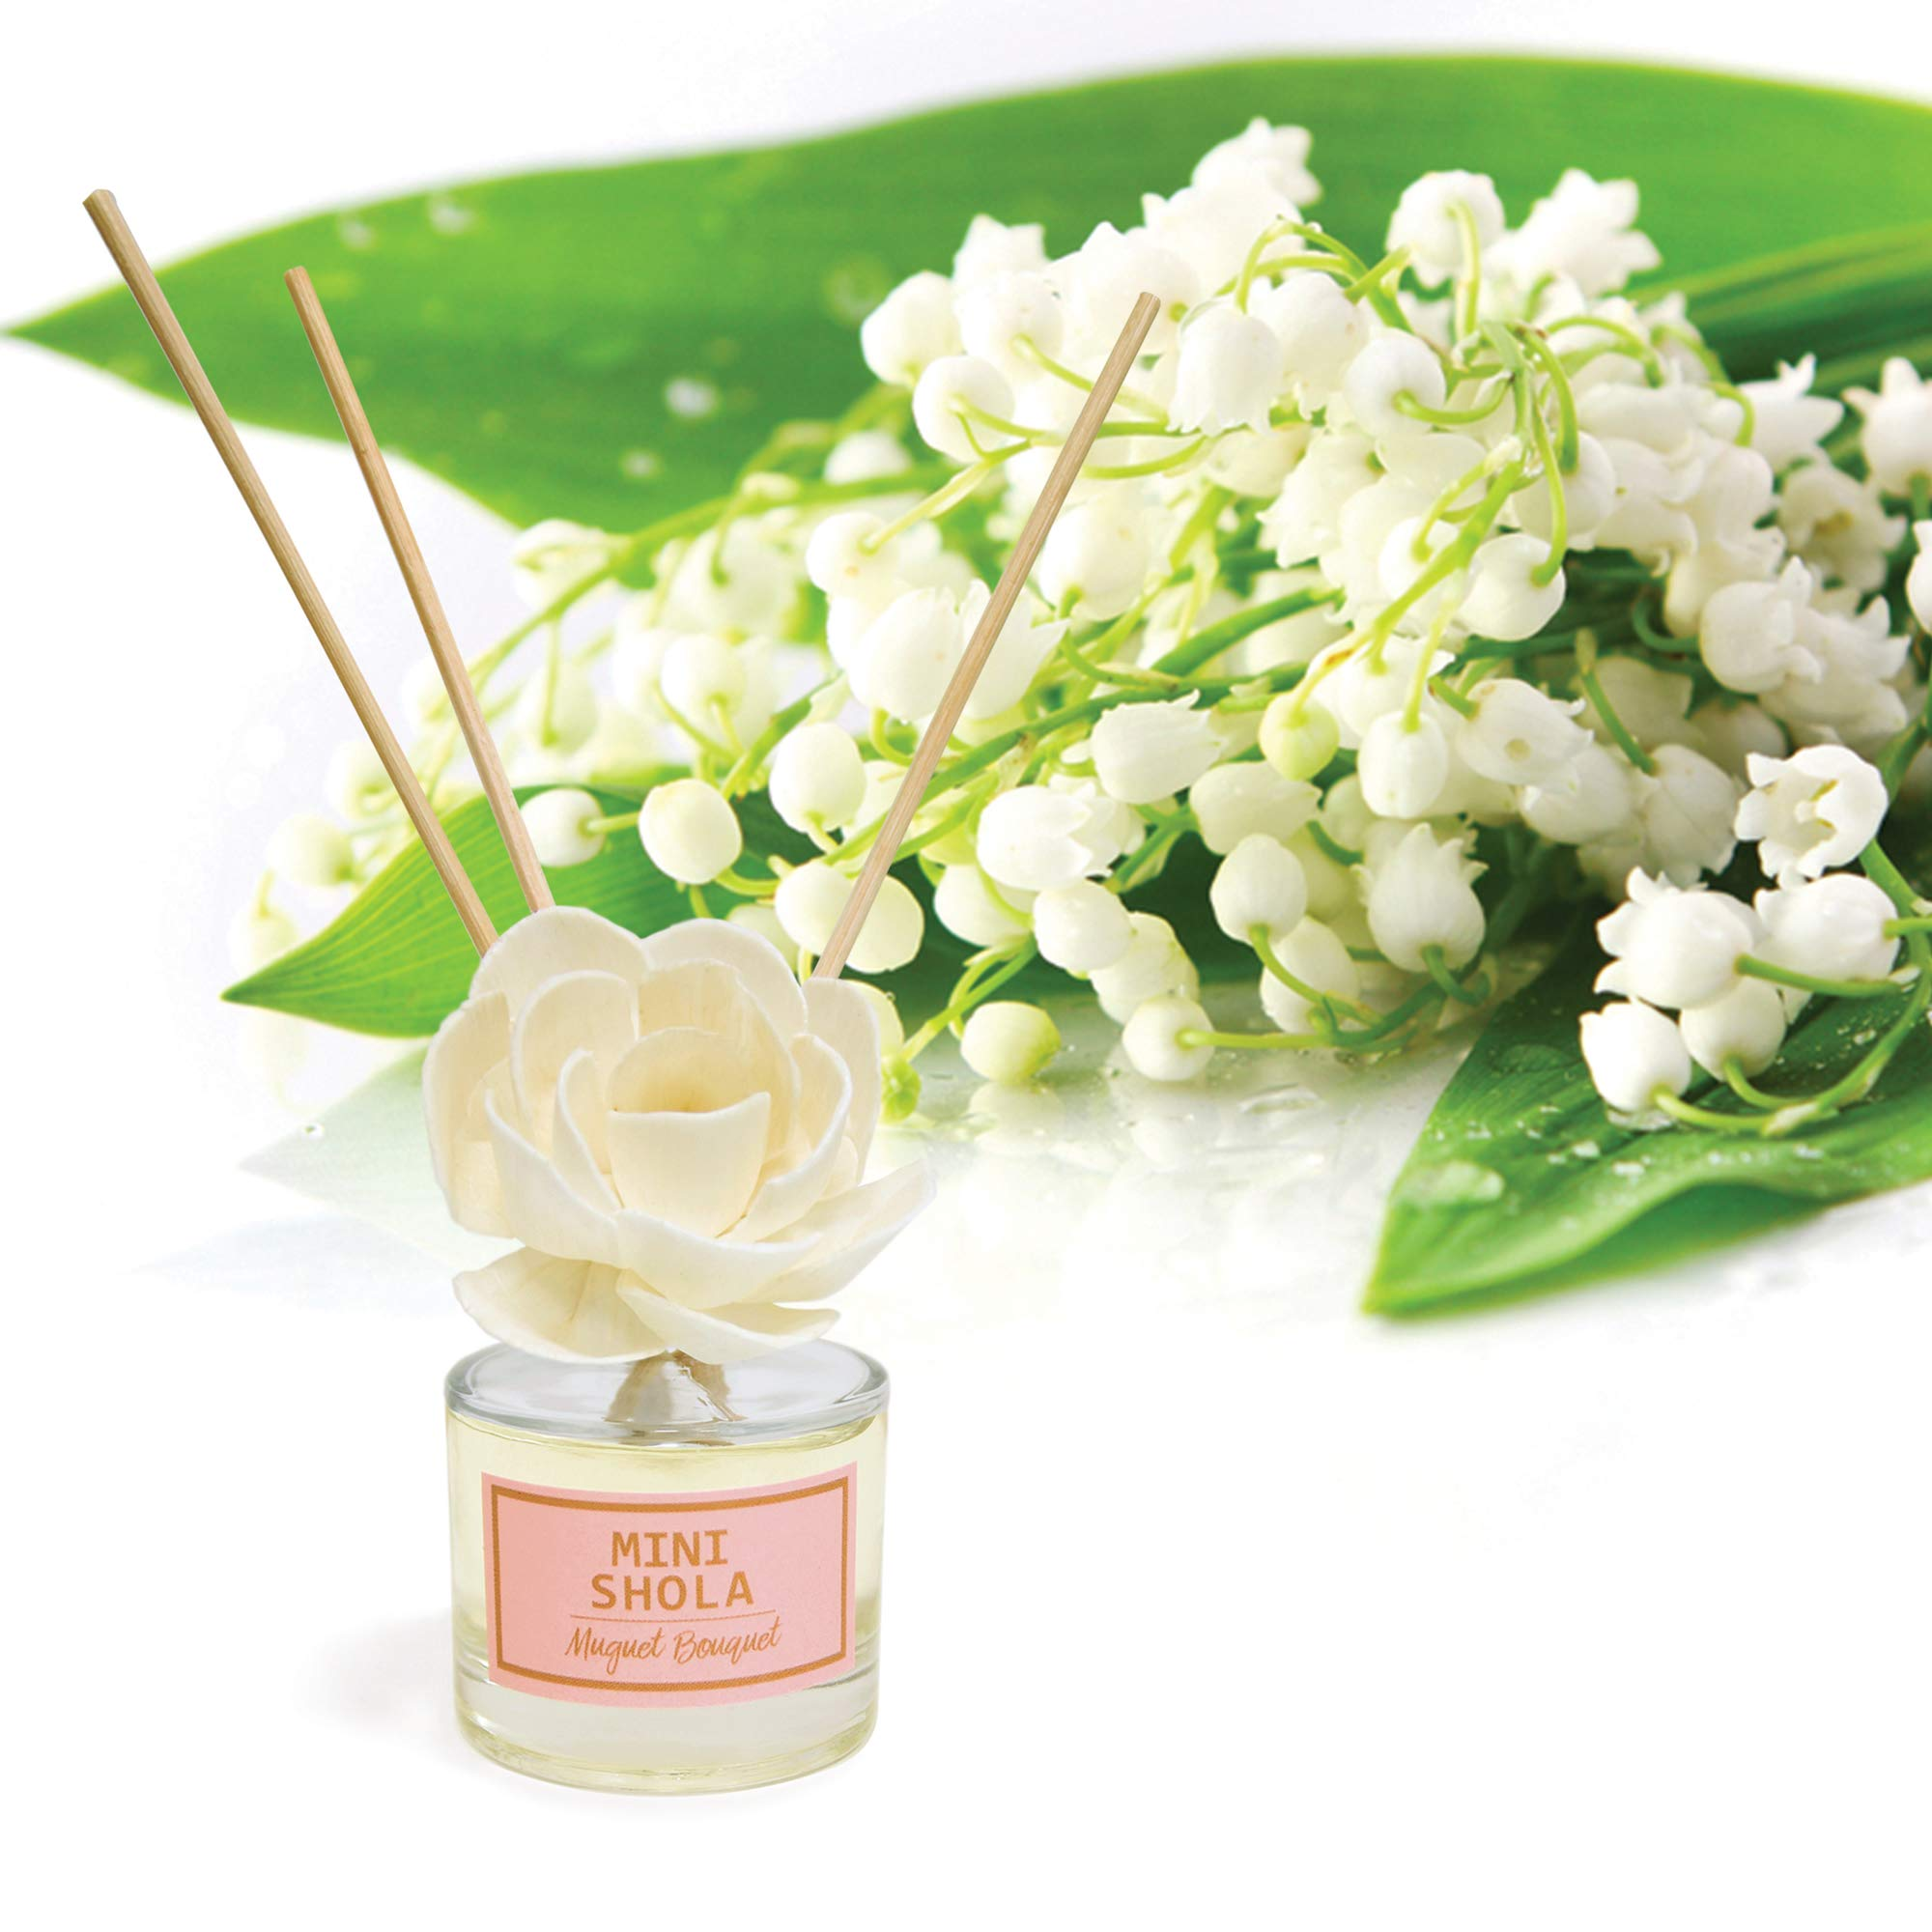 Aronica Mini Floral Diffuser 2 Pack Set - Sola Flower White Rose (40ml) + Muguet (40ml) by Aronica (Image #2)